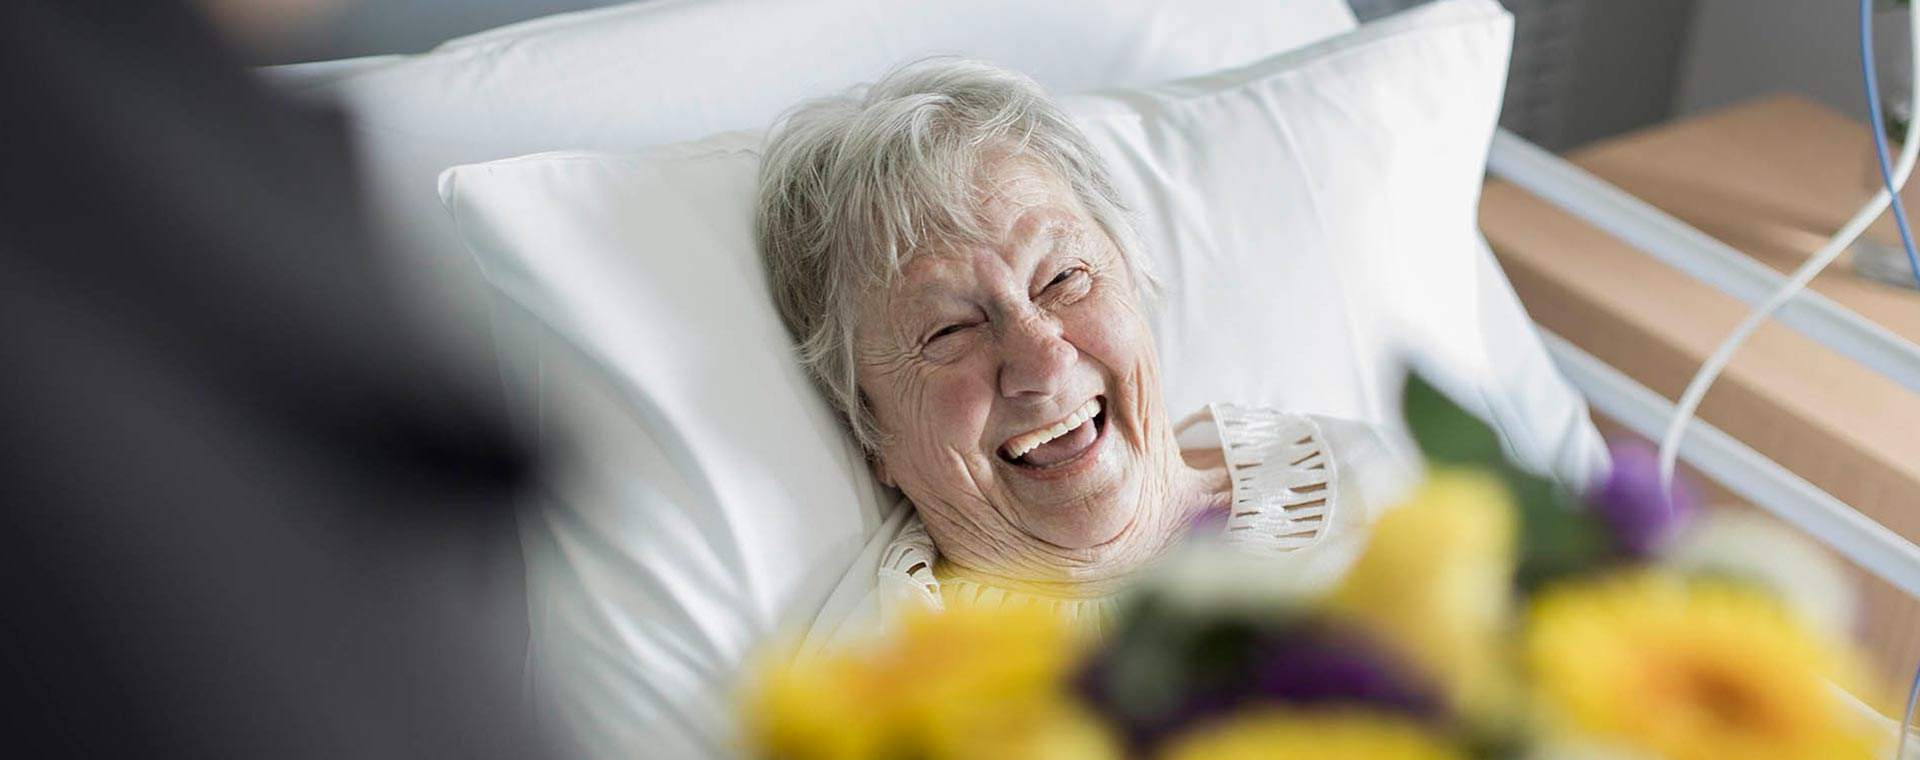 Happy Patient with Visitor